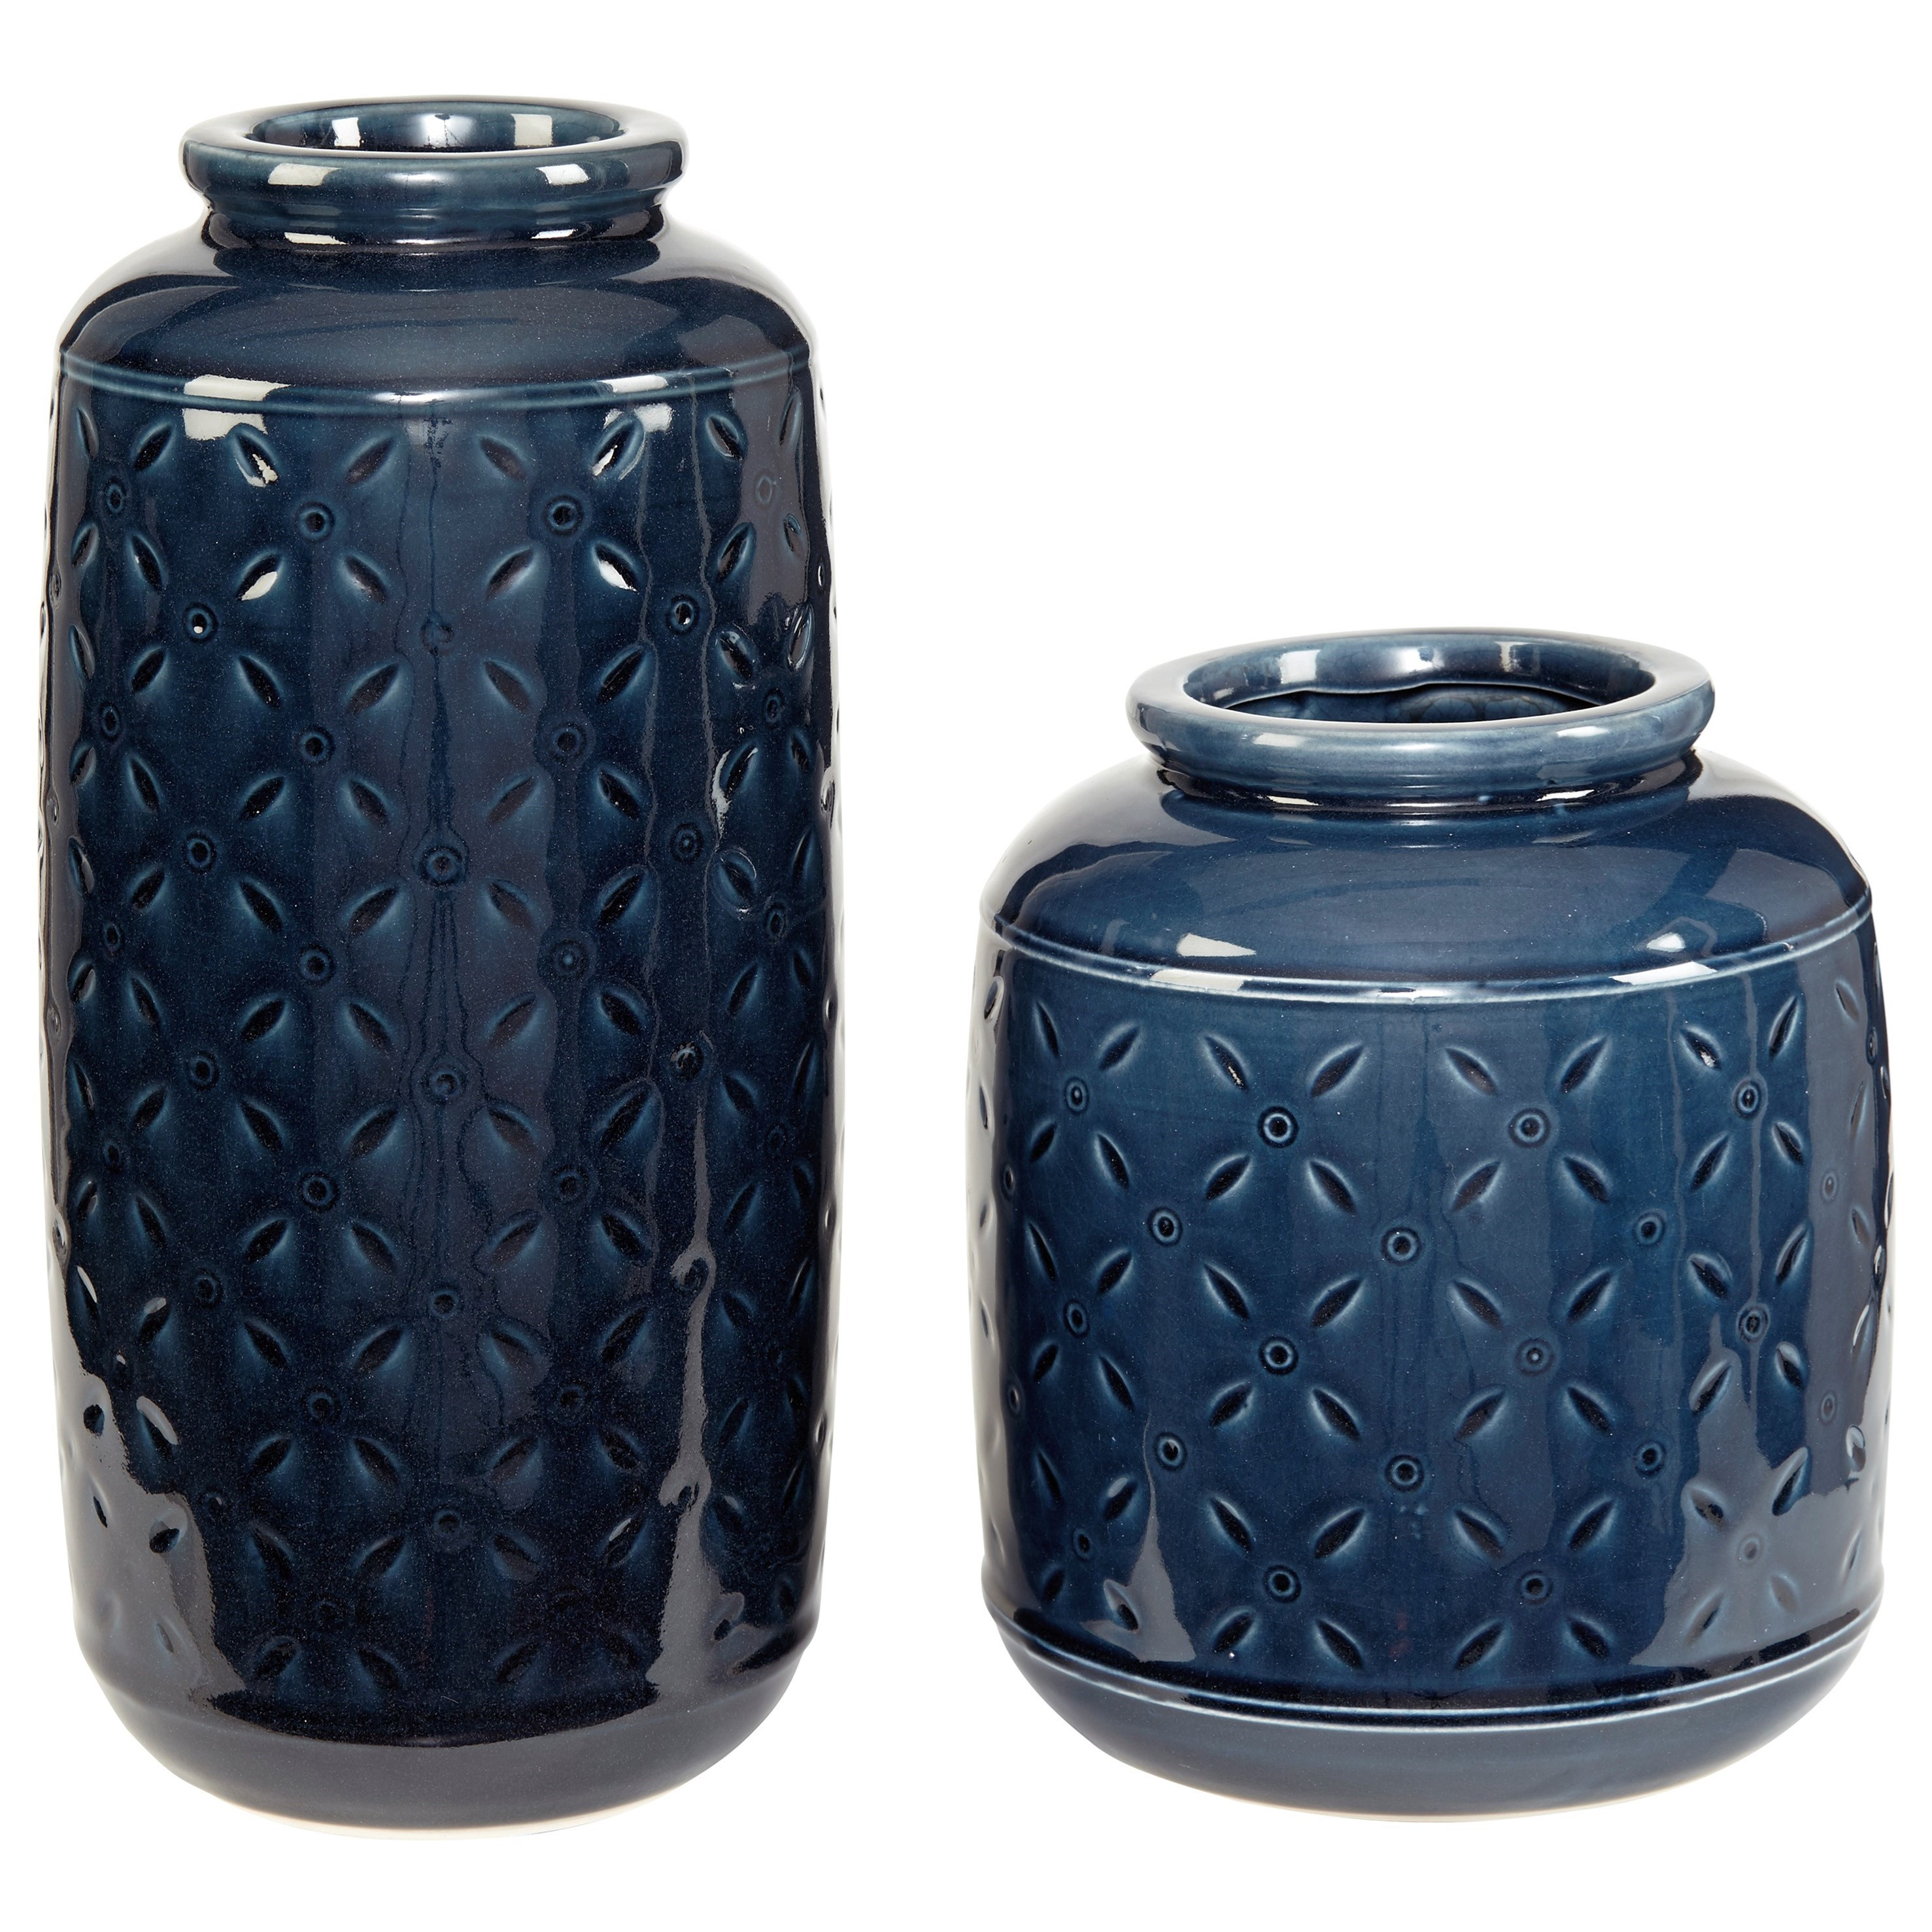 Accents Marenda Navy Blue Vase Set by Signature Design by Ashley at Catalog Outlet